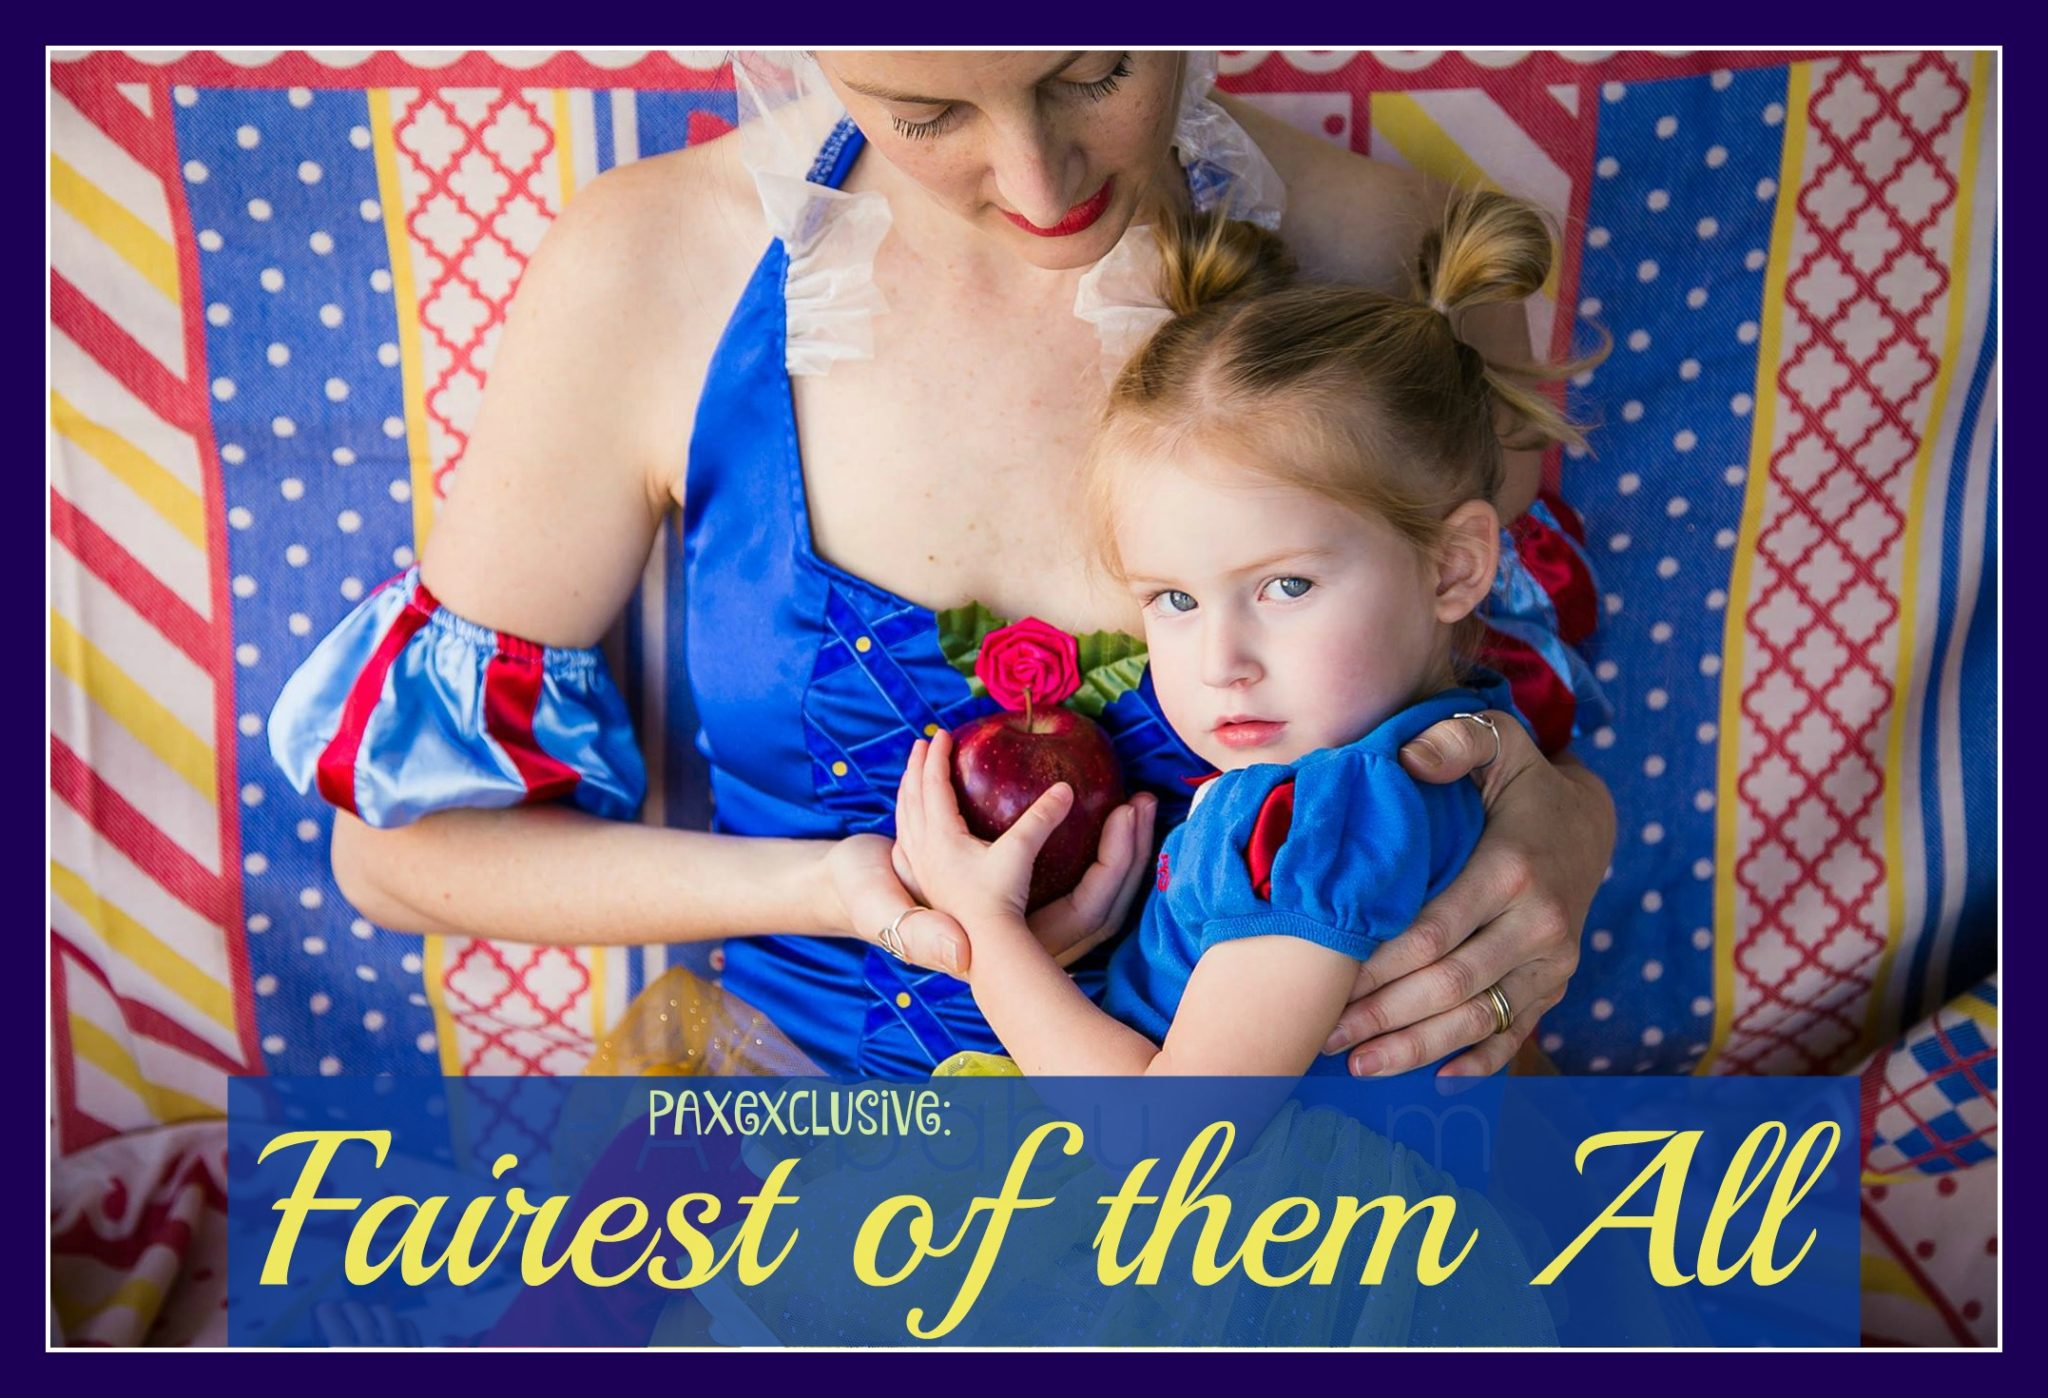 paxbaby_fairest_of_them_all_free-friday_natibaby